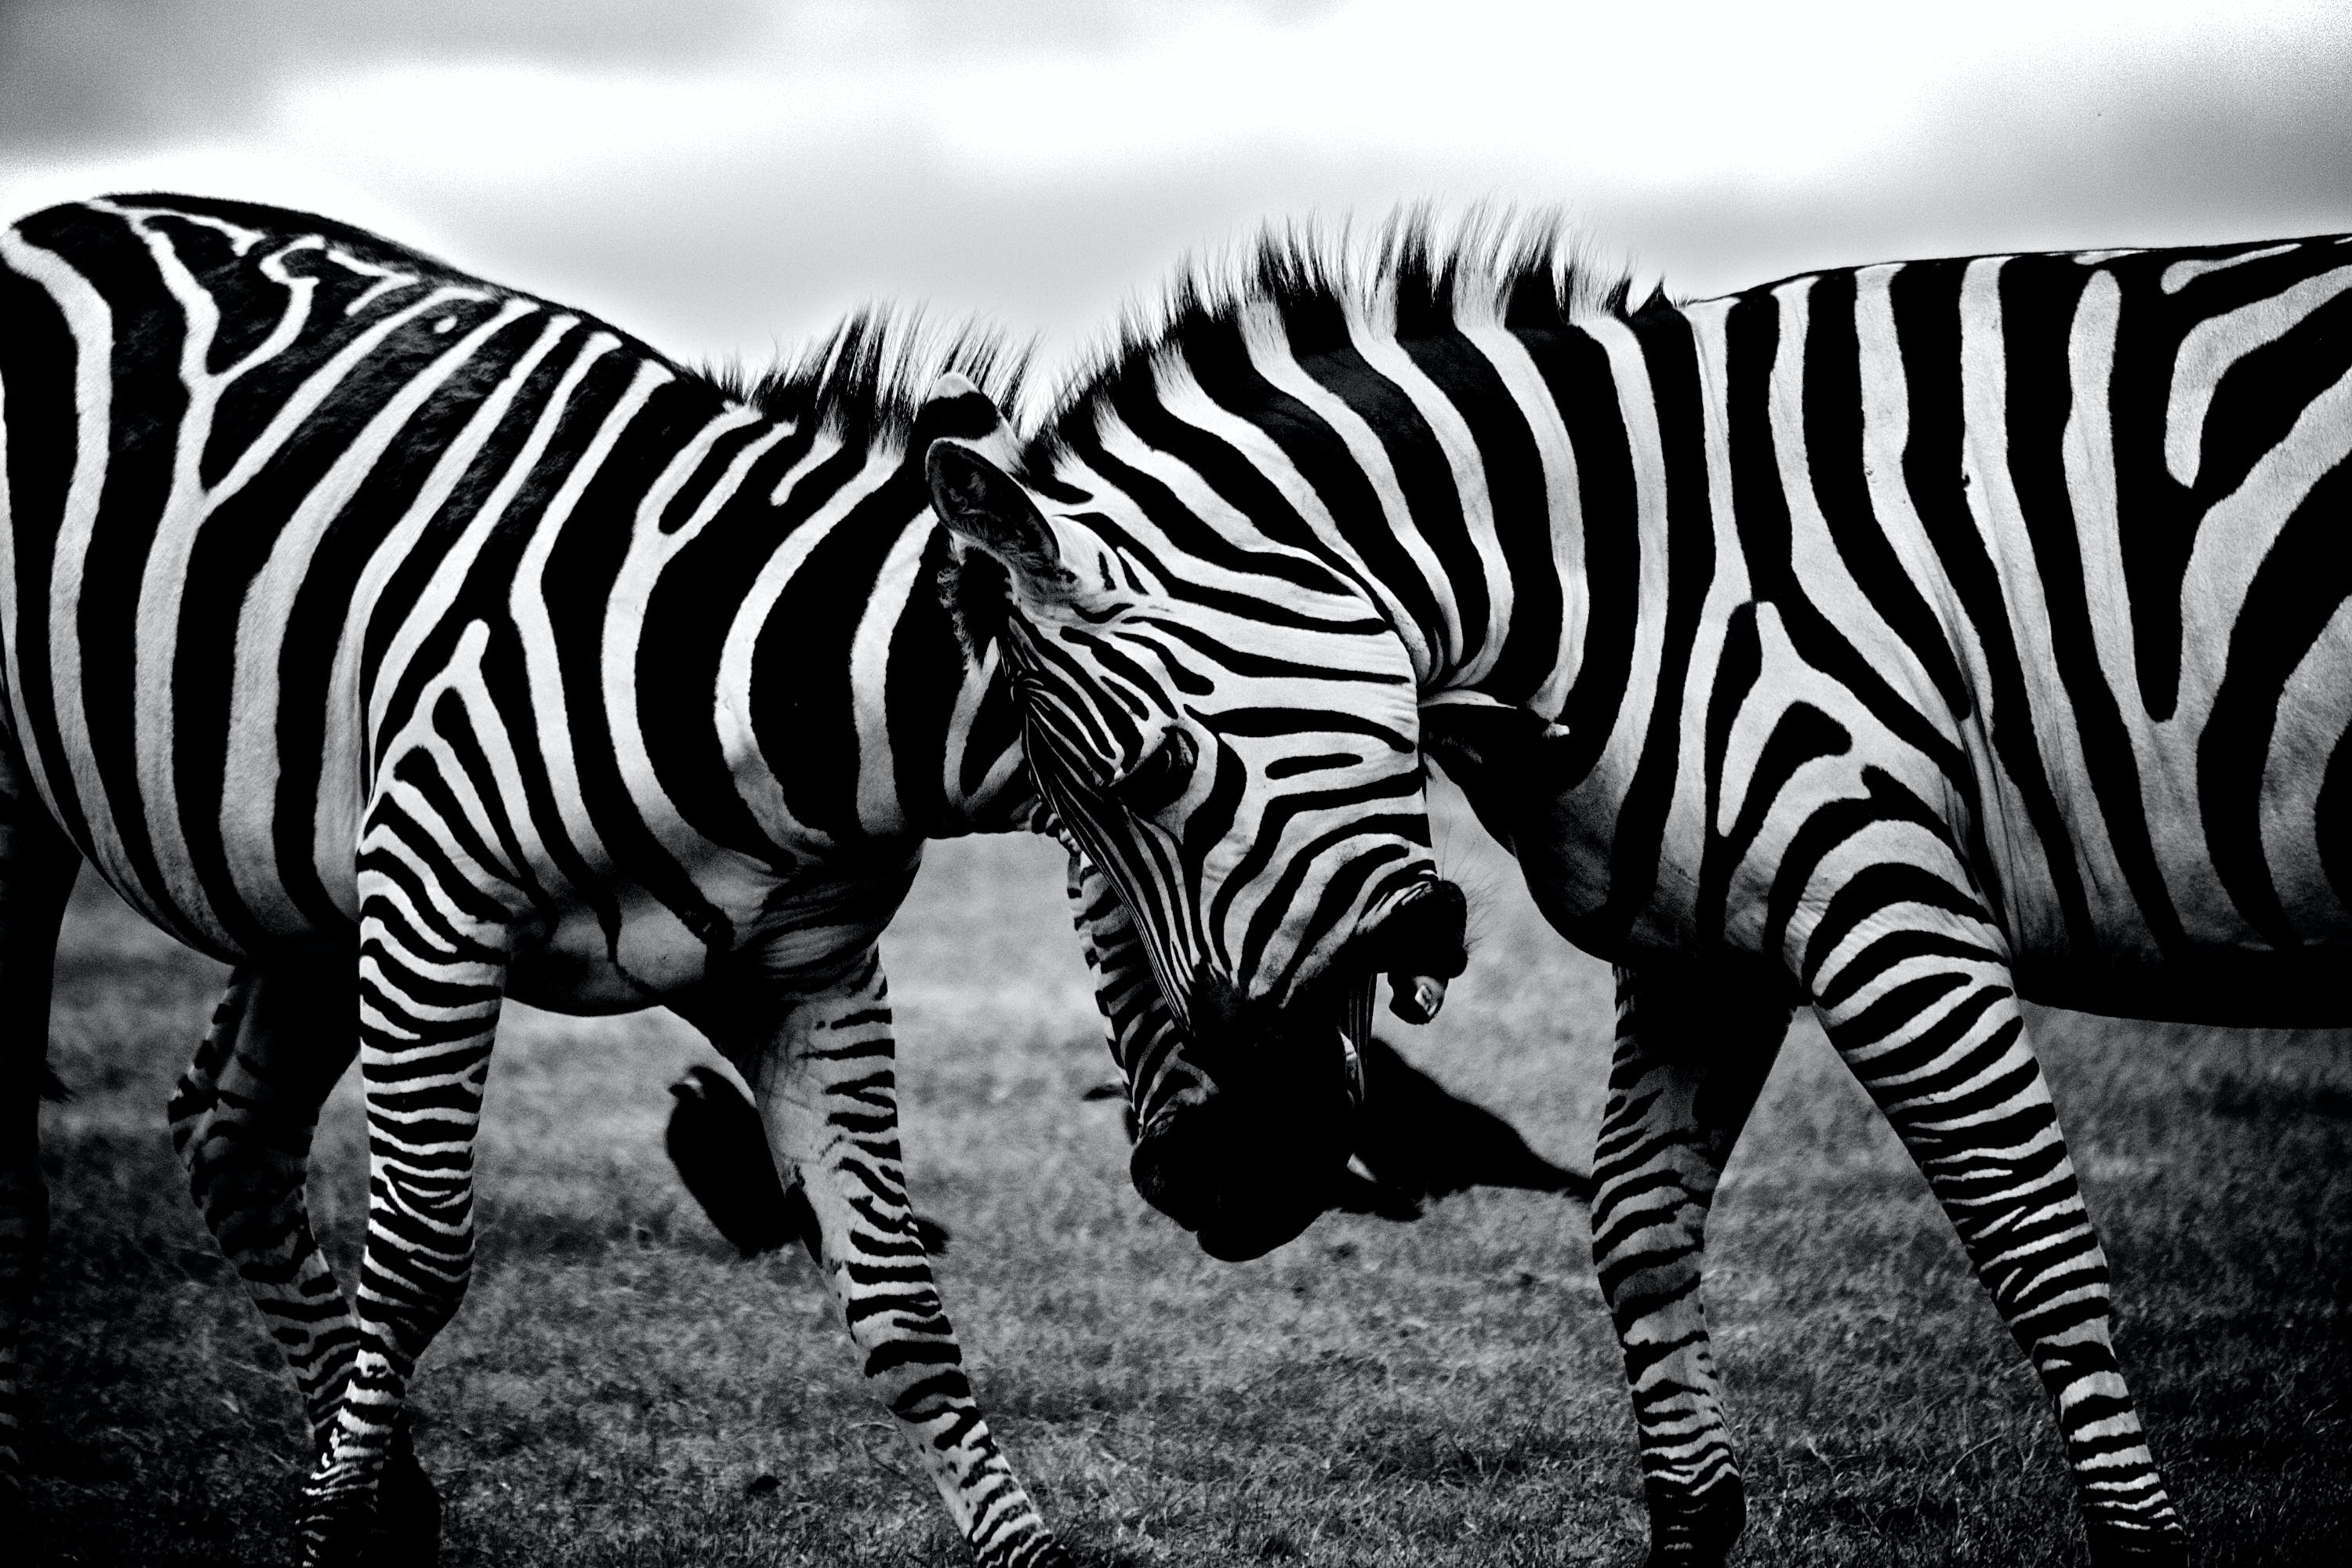 Grayscale Photography of Two Zebra on Standing on Ground